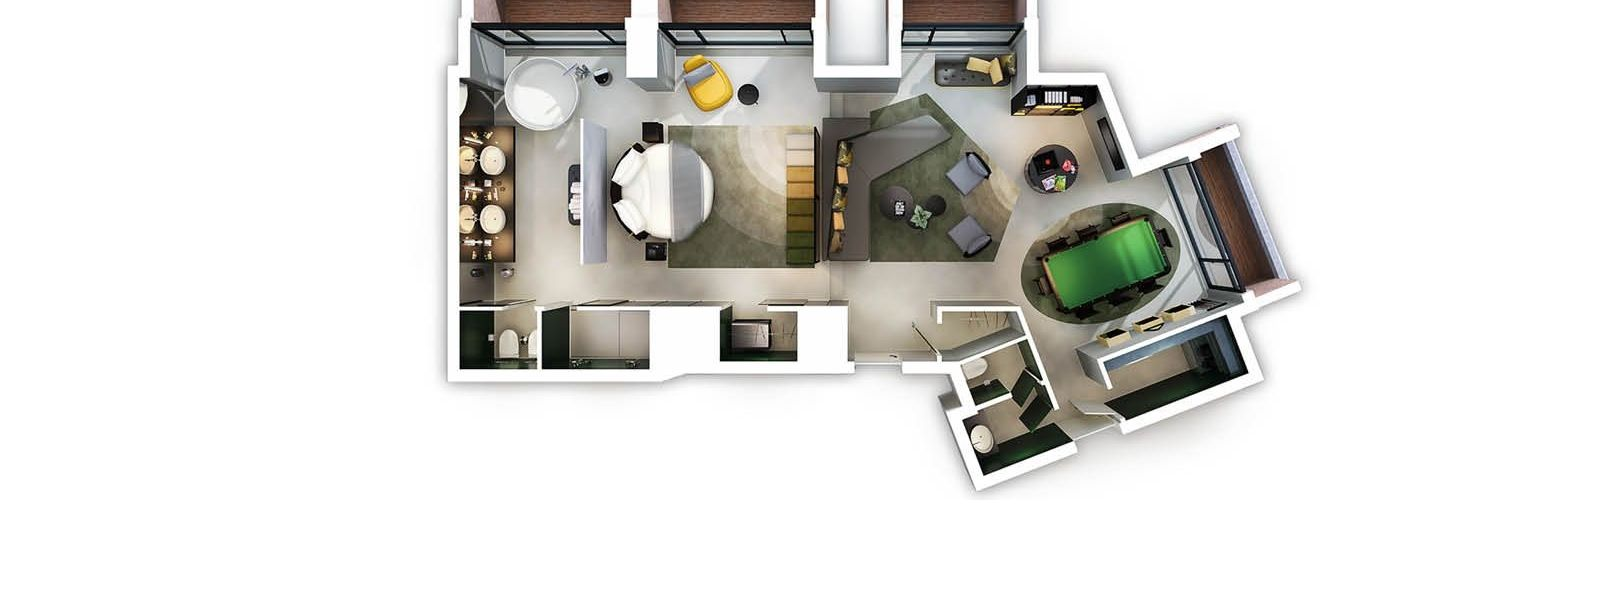 Extreme Wow Suite Exchange Floor Plan - W Amsterdam